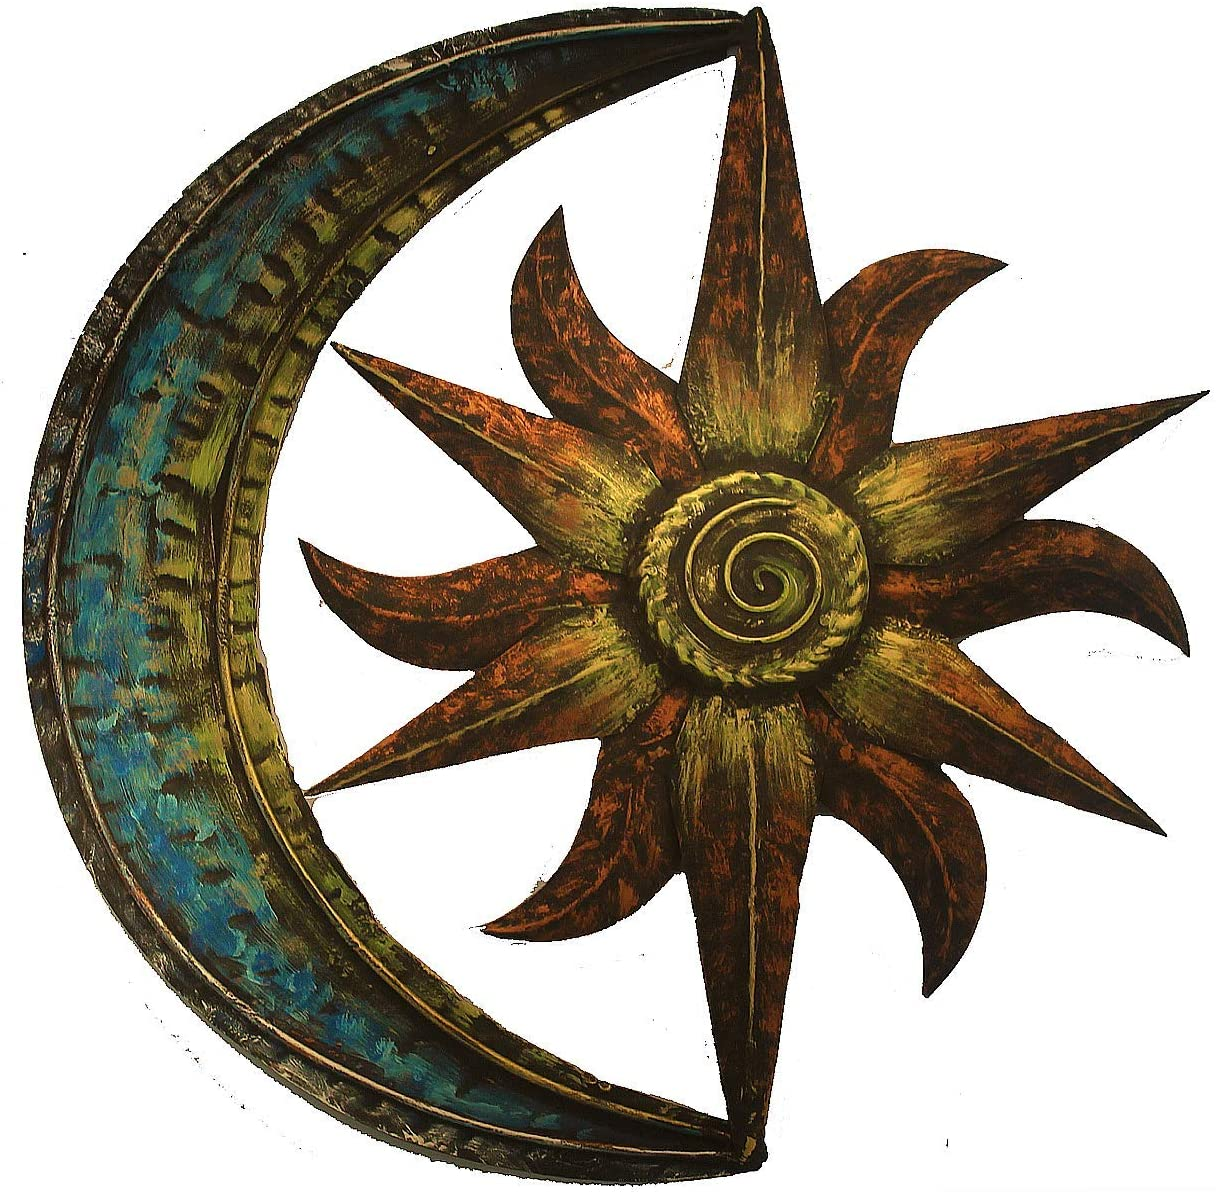 Crafia Celestial Themed Metal Wall Decor | Hand Painted Metal Wall Art | Moon Star Shape Iron showpiece | Metal Wall Decor Ideas